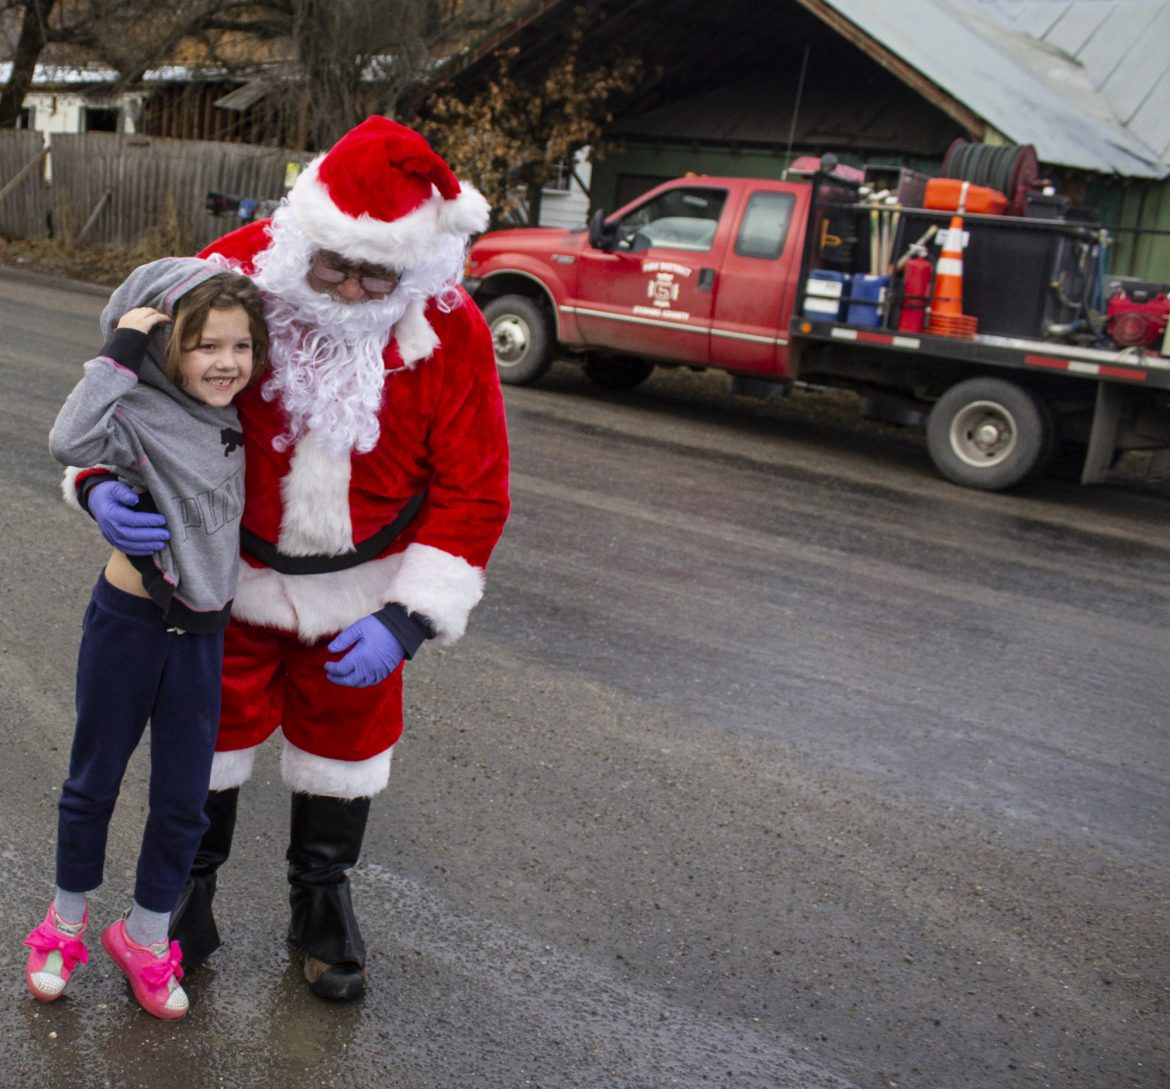 IN PHOTOS: Santa comes over in a fire truck